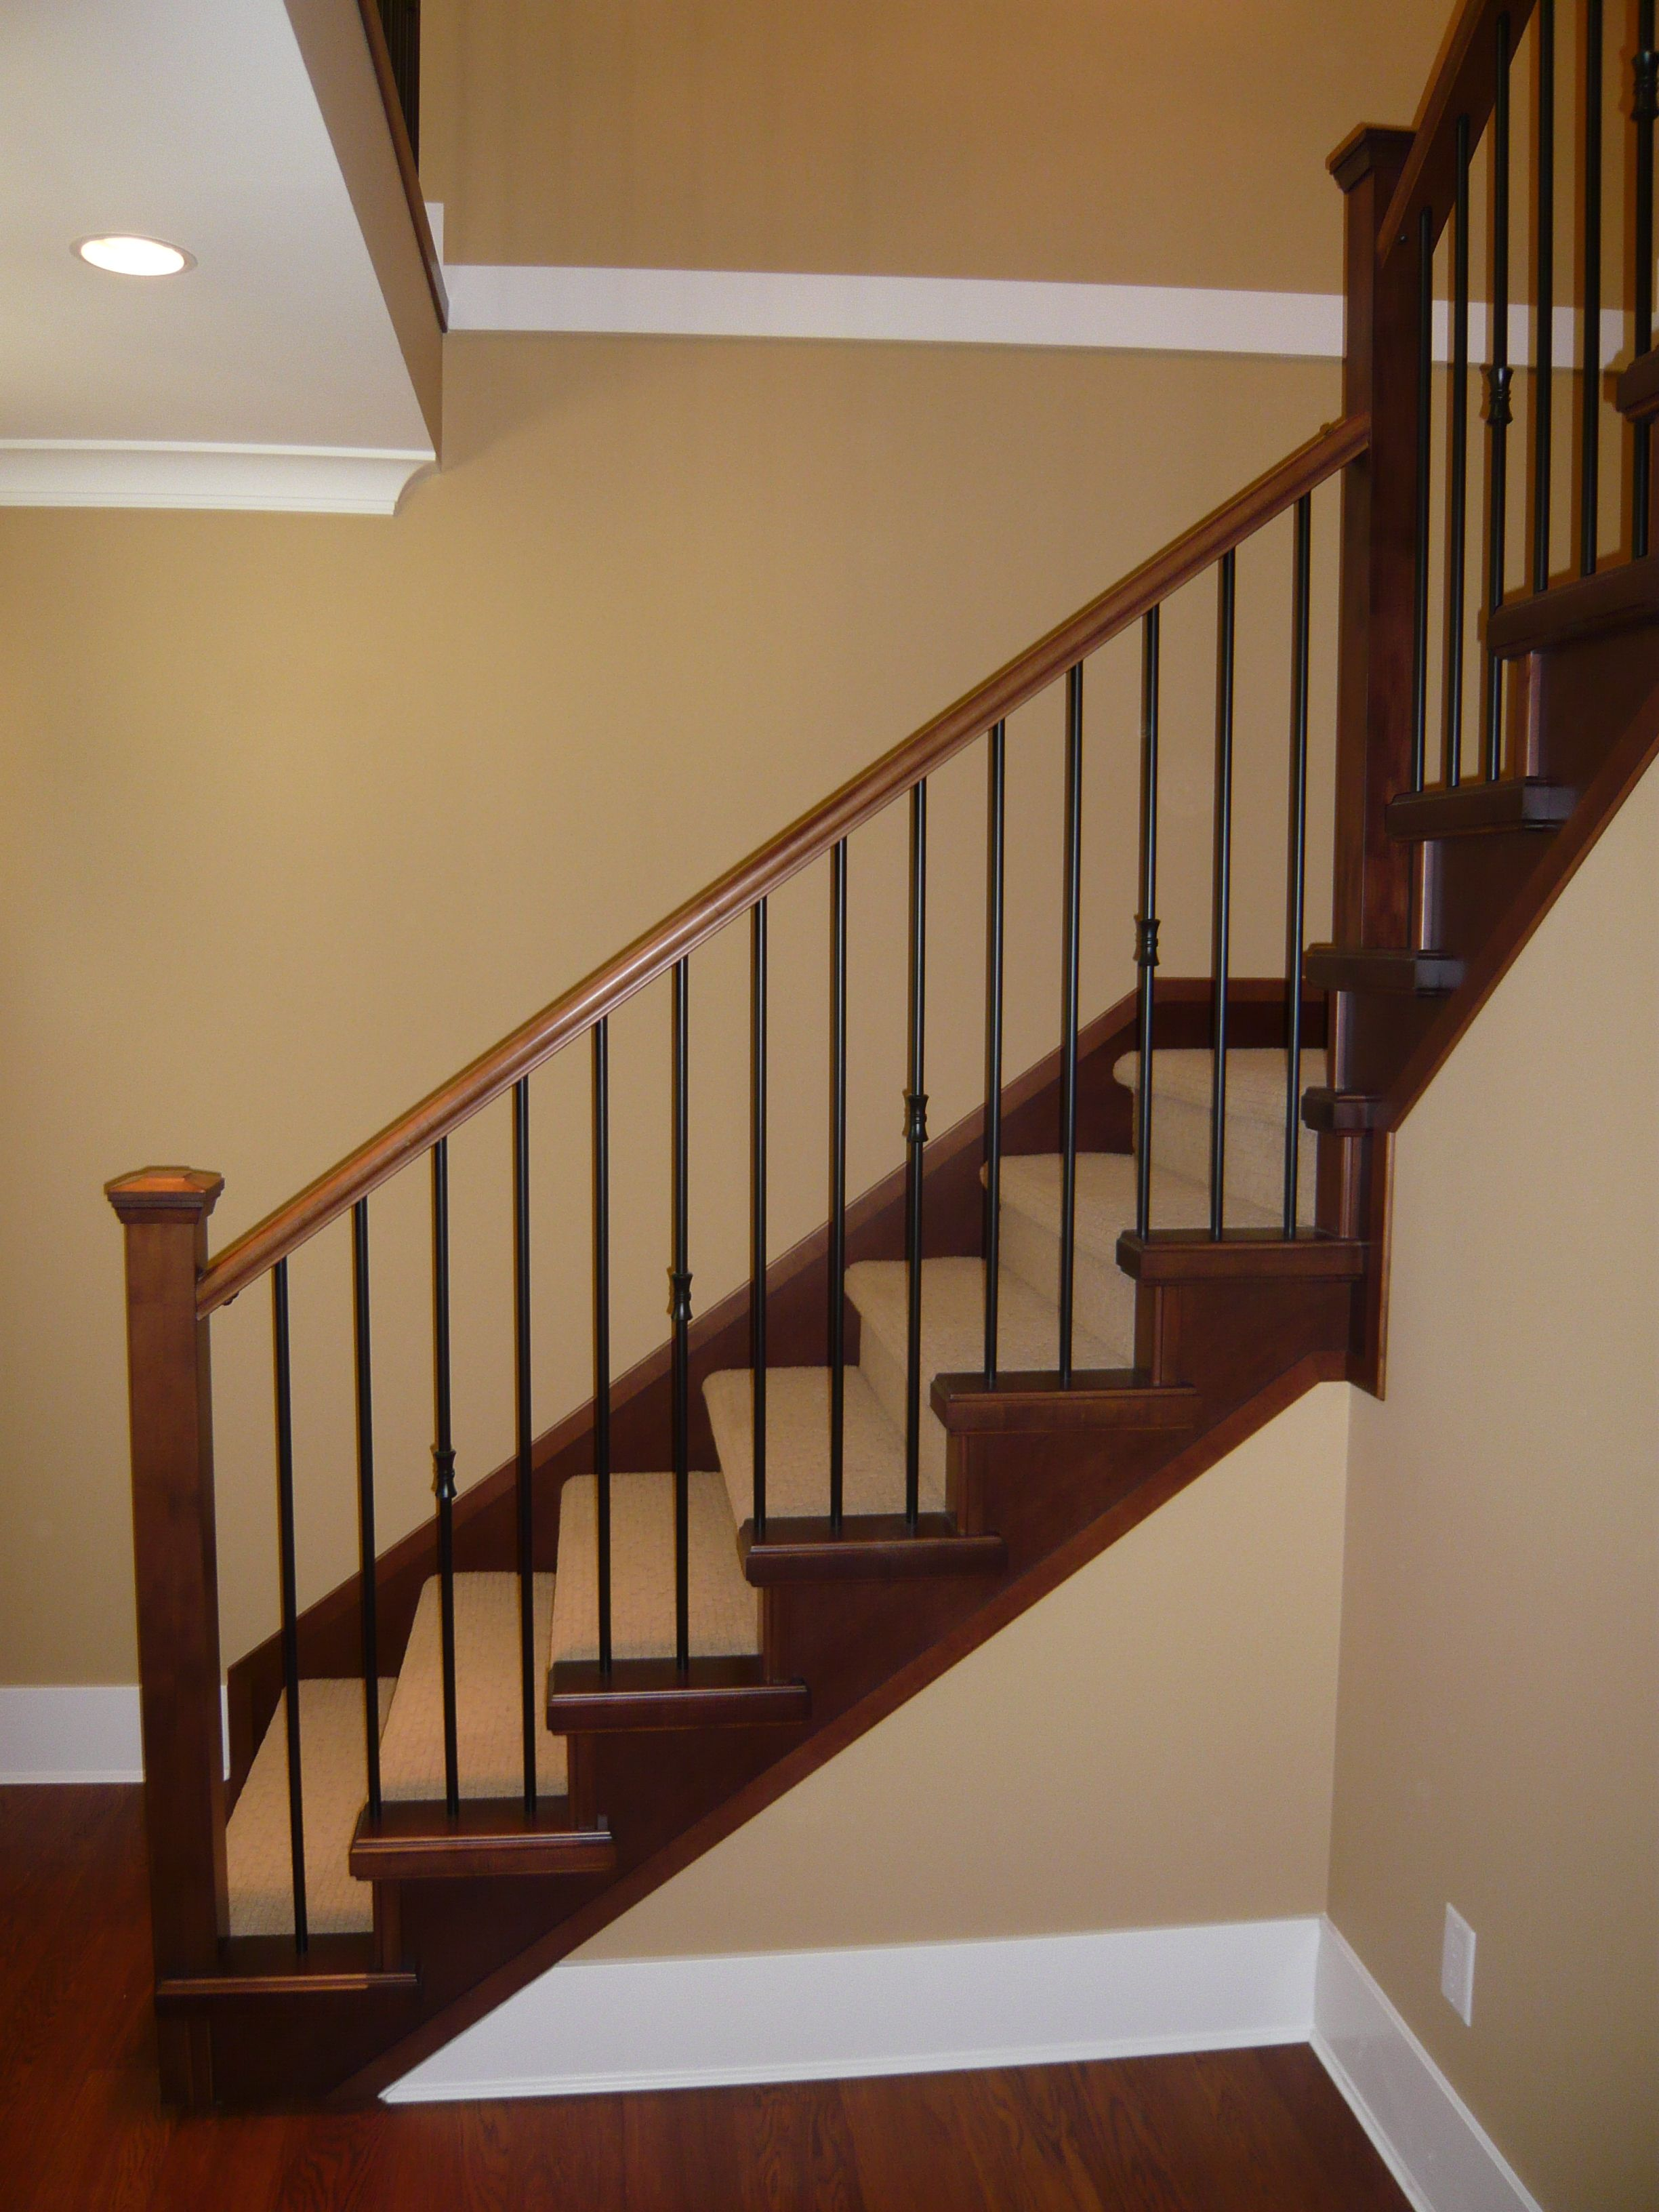 STAIR RAILING | Scotwend Homes Ltd. » Blog Archive » Railings And Stair Caps